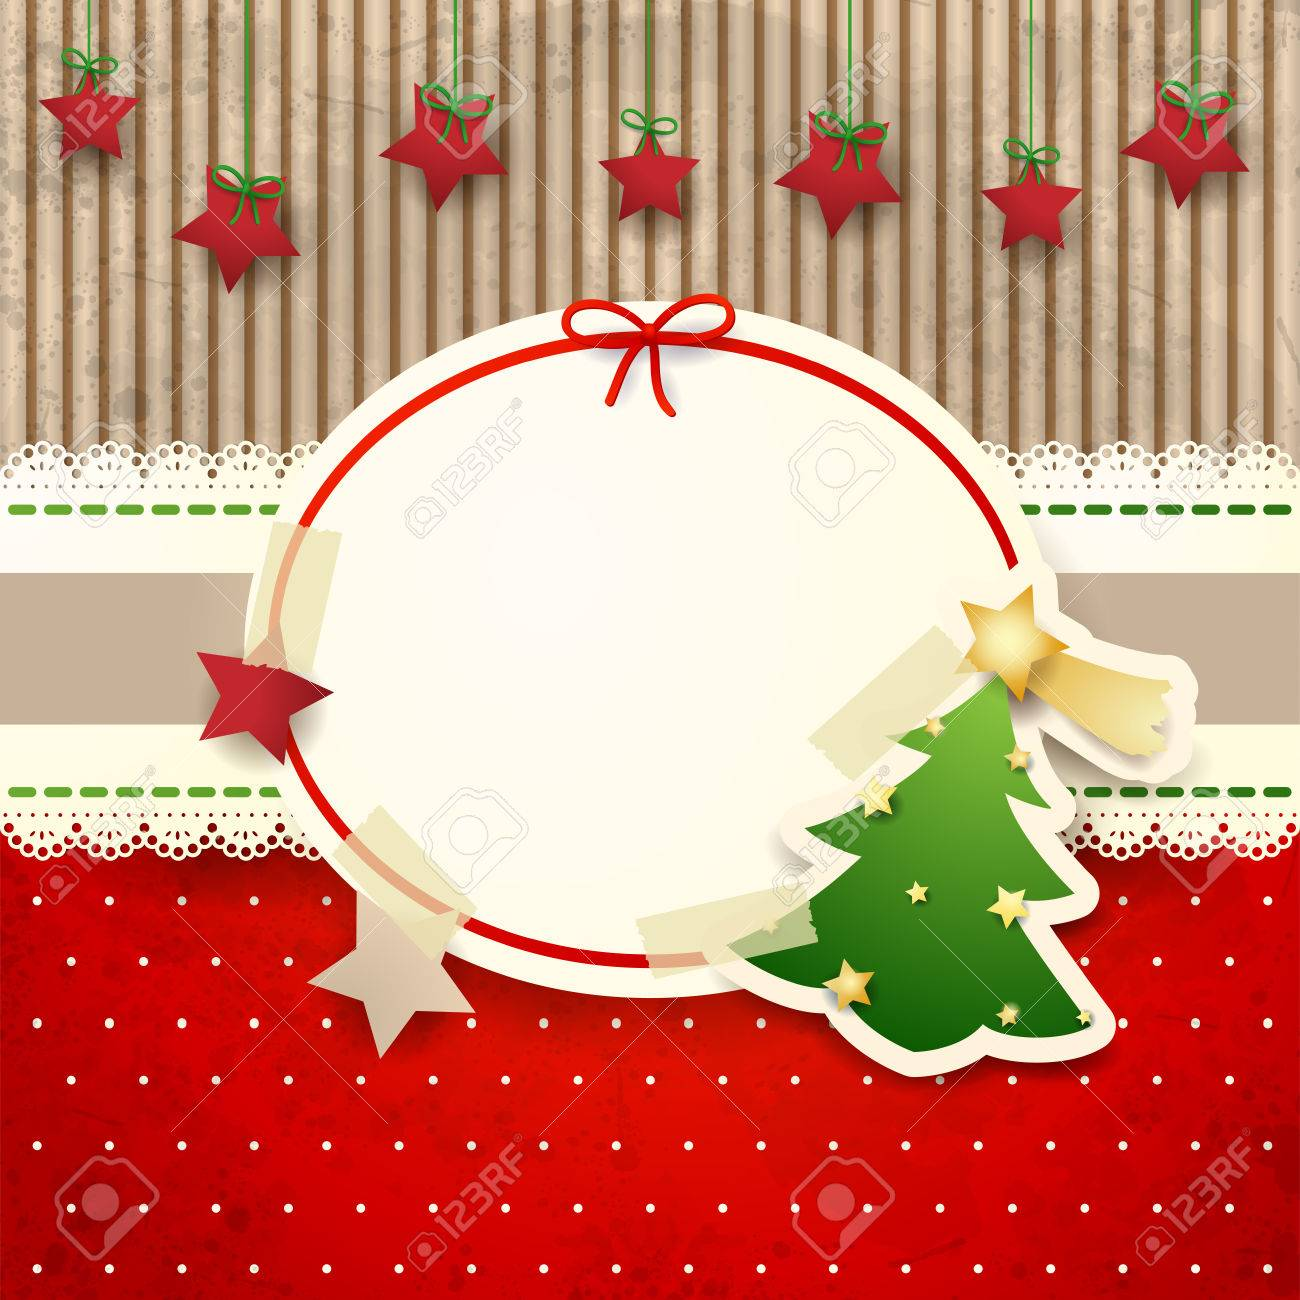 Christmas background with paper tree - 22544327